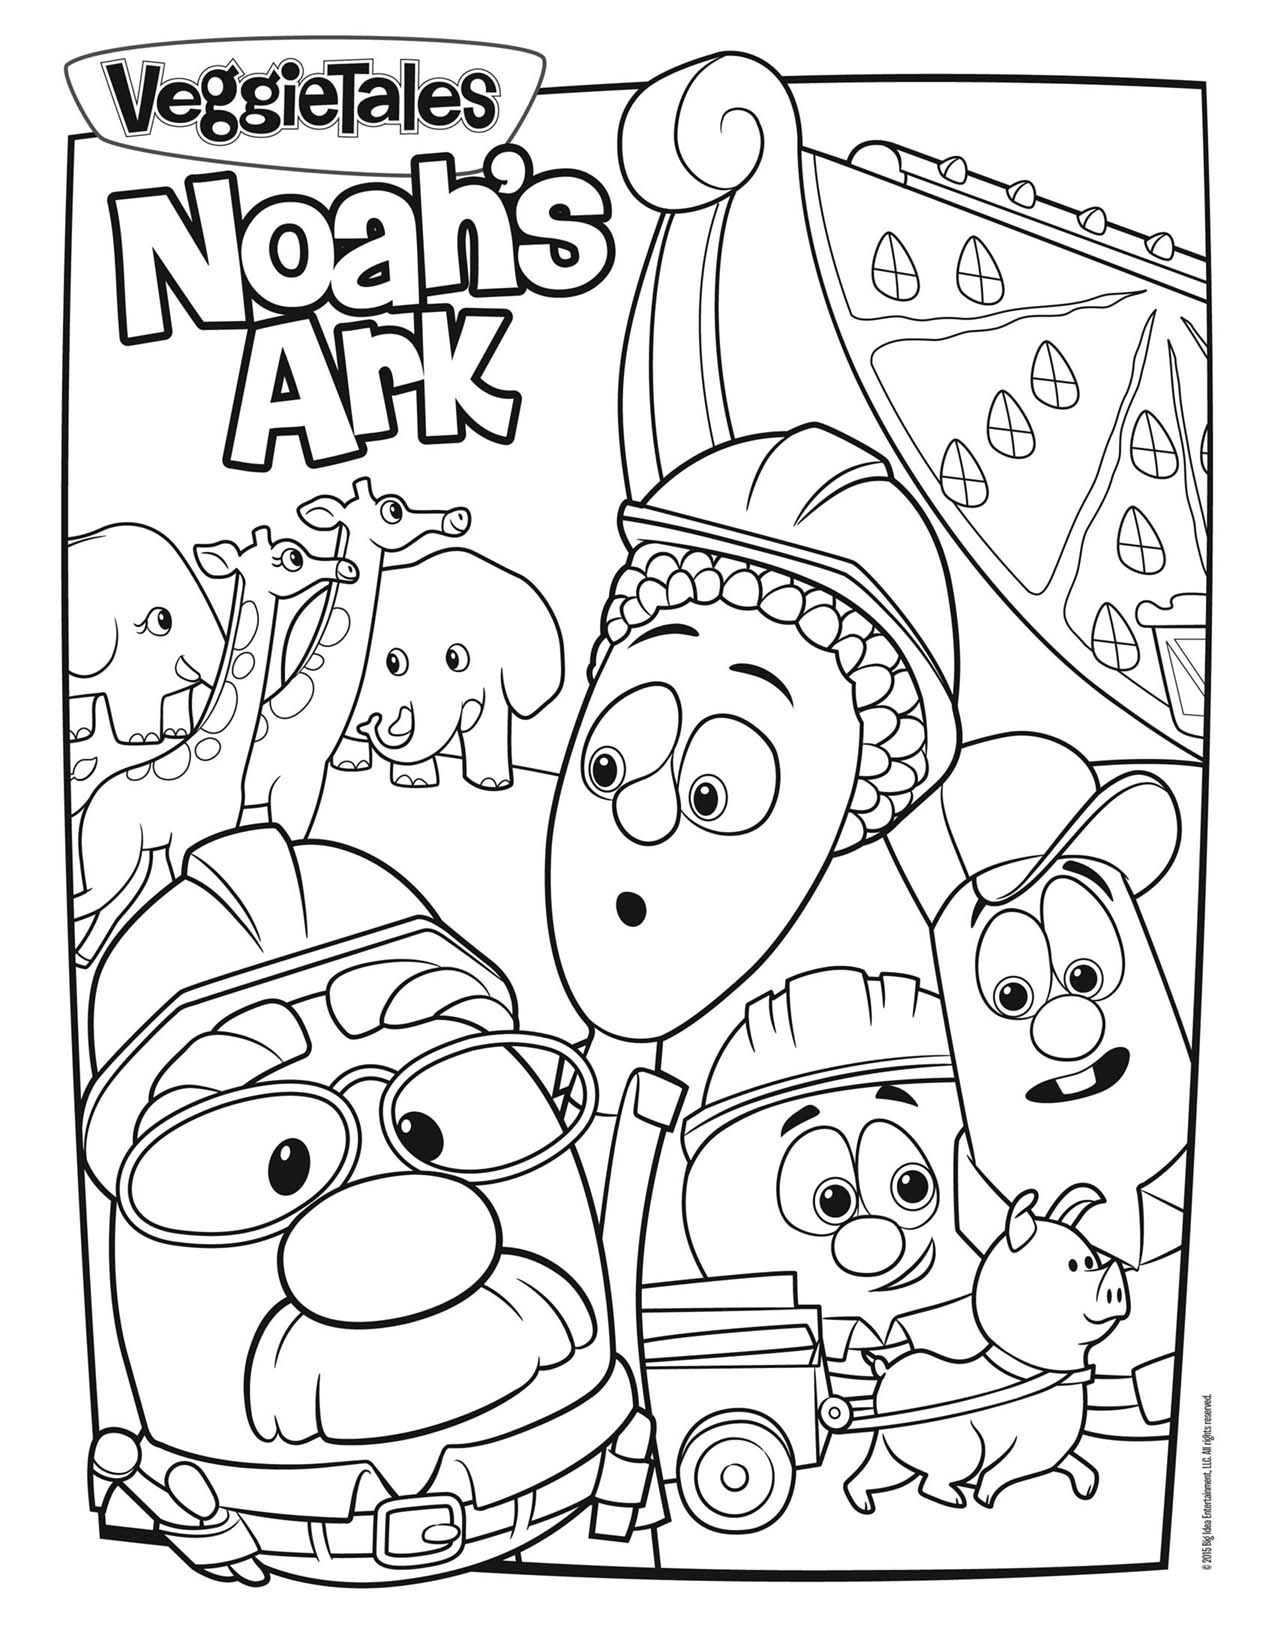 Noah39s Ark Coloring Page Bible crafts for kids Veggie